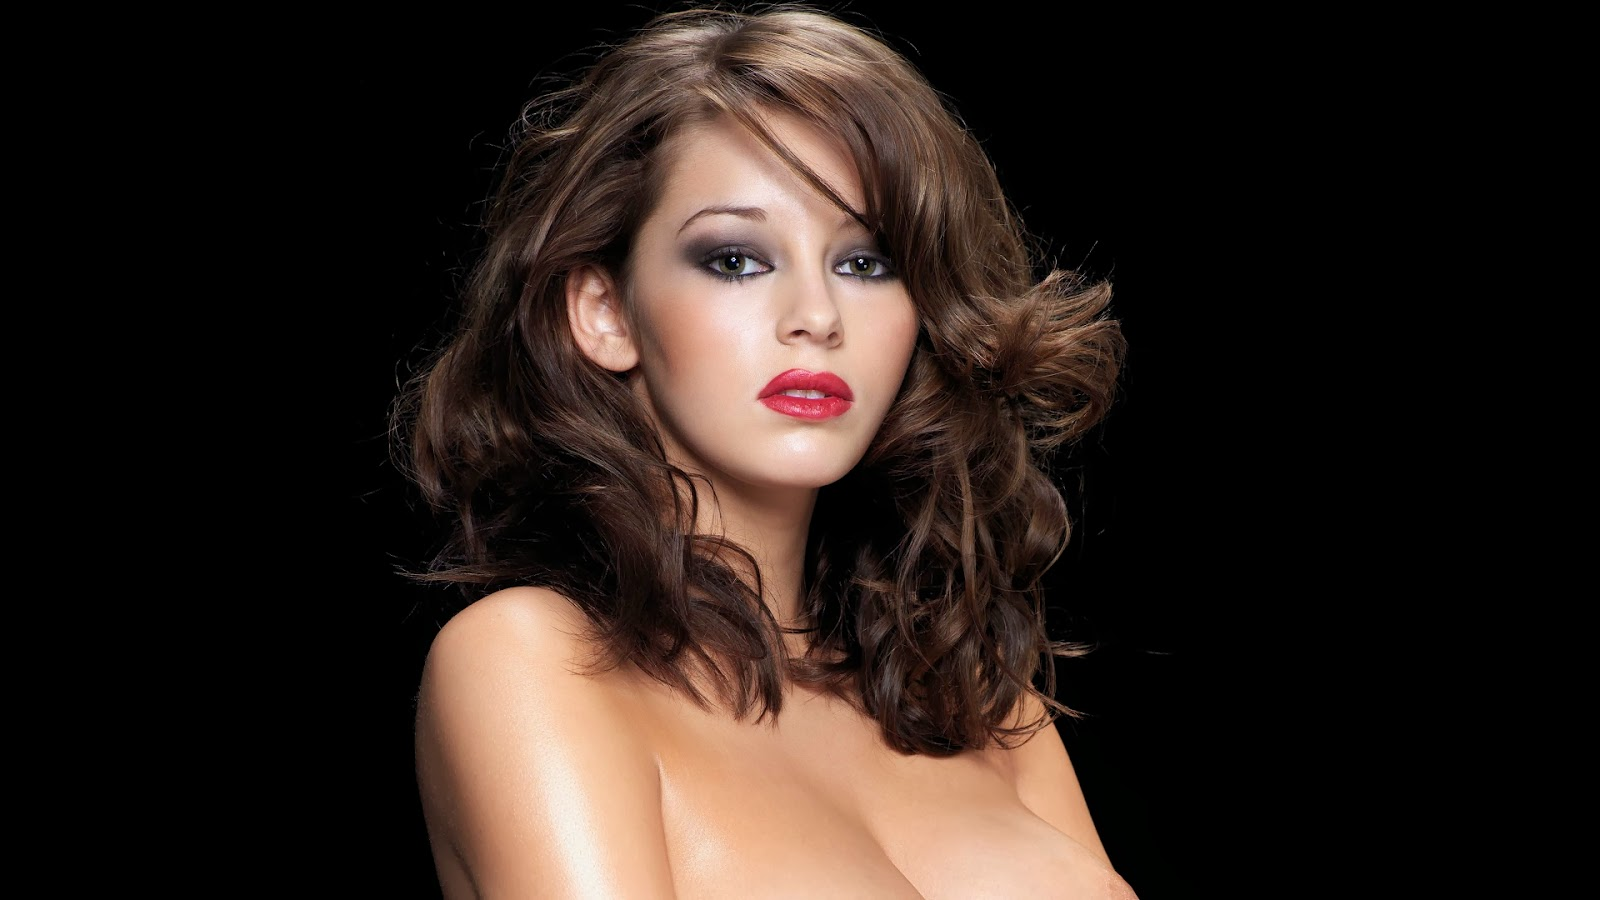 keeley hazell downloads backgrounds - photo #2